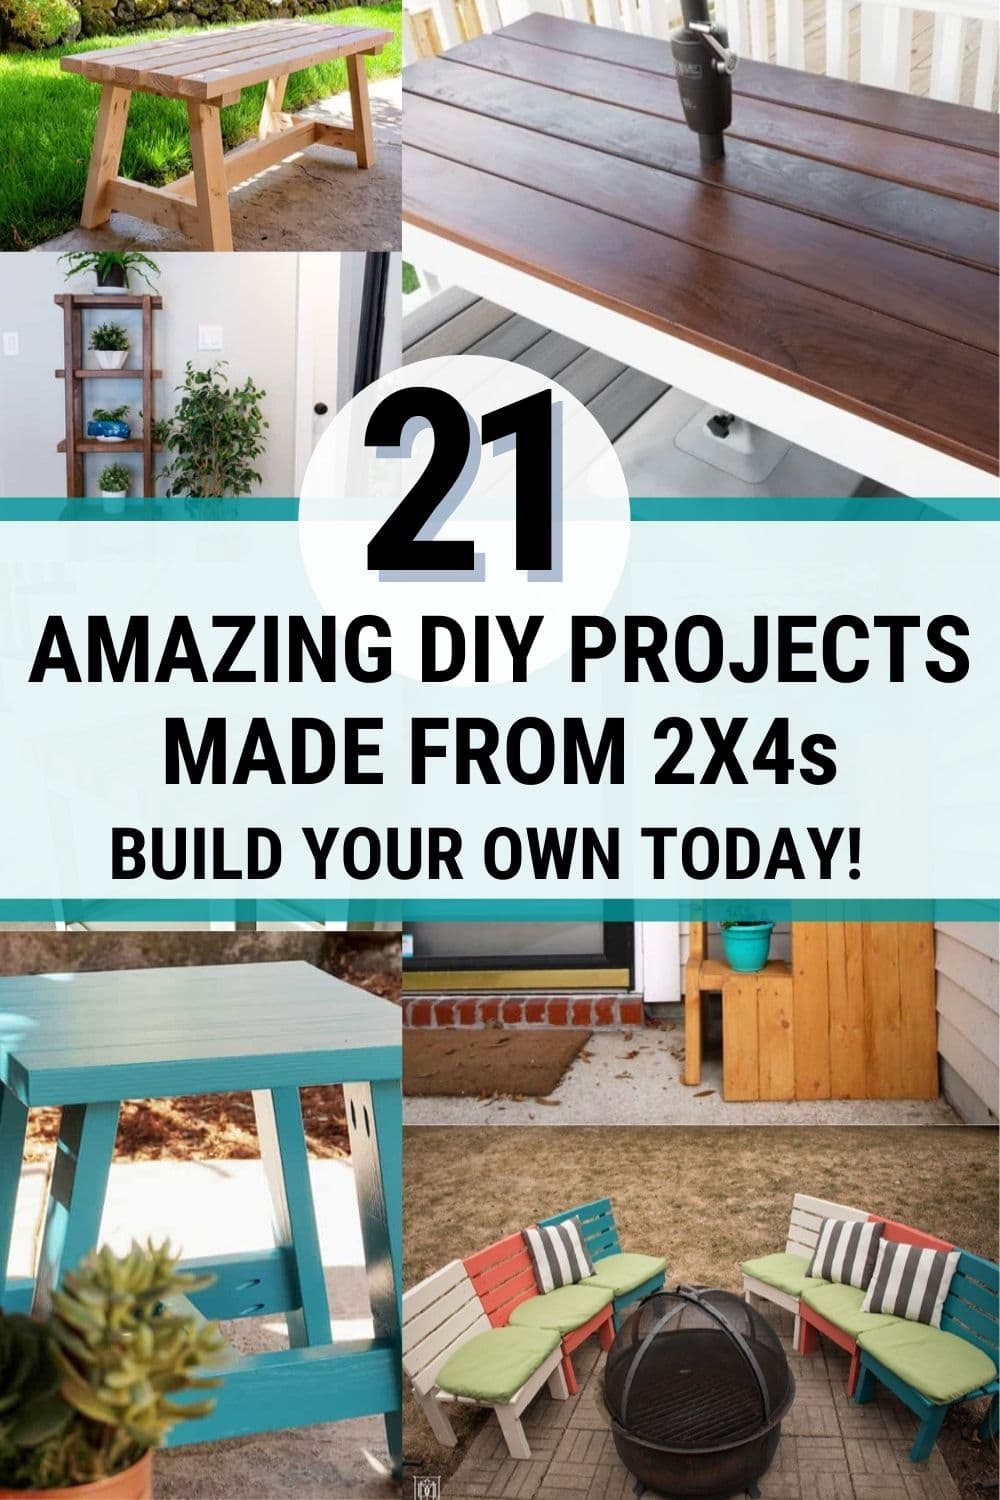 image collage of 2x4 projects with text 21 amazing diy projects made from 2x4s